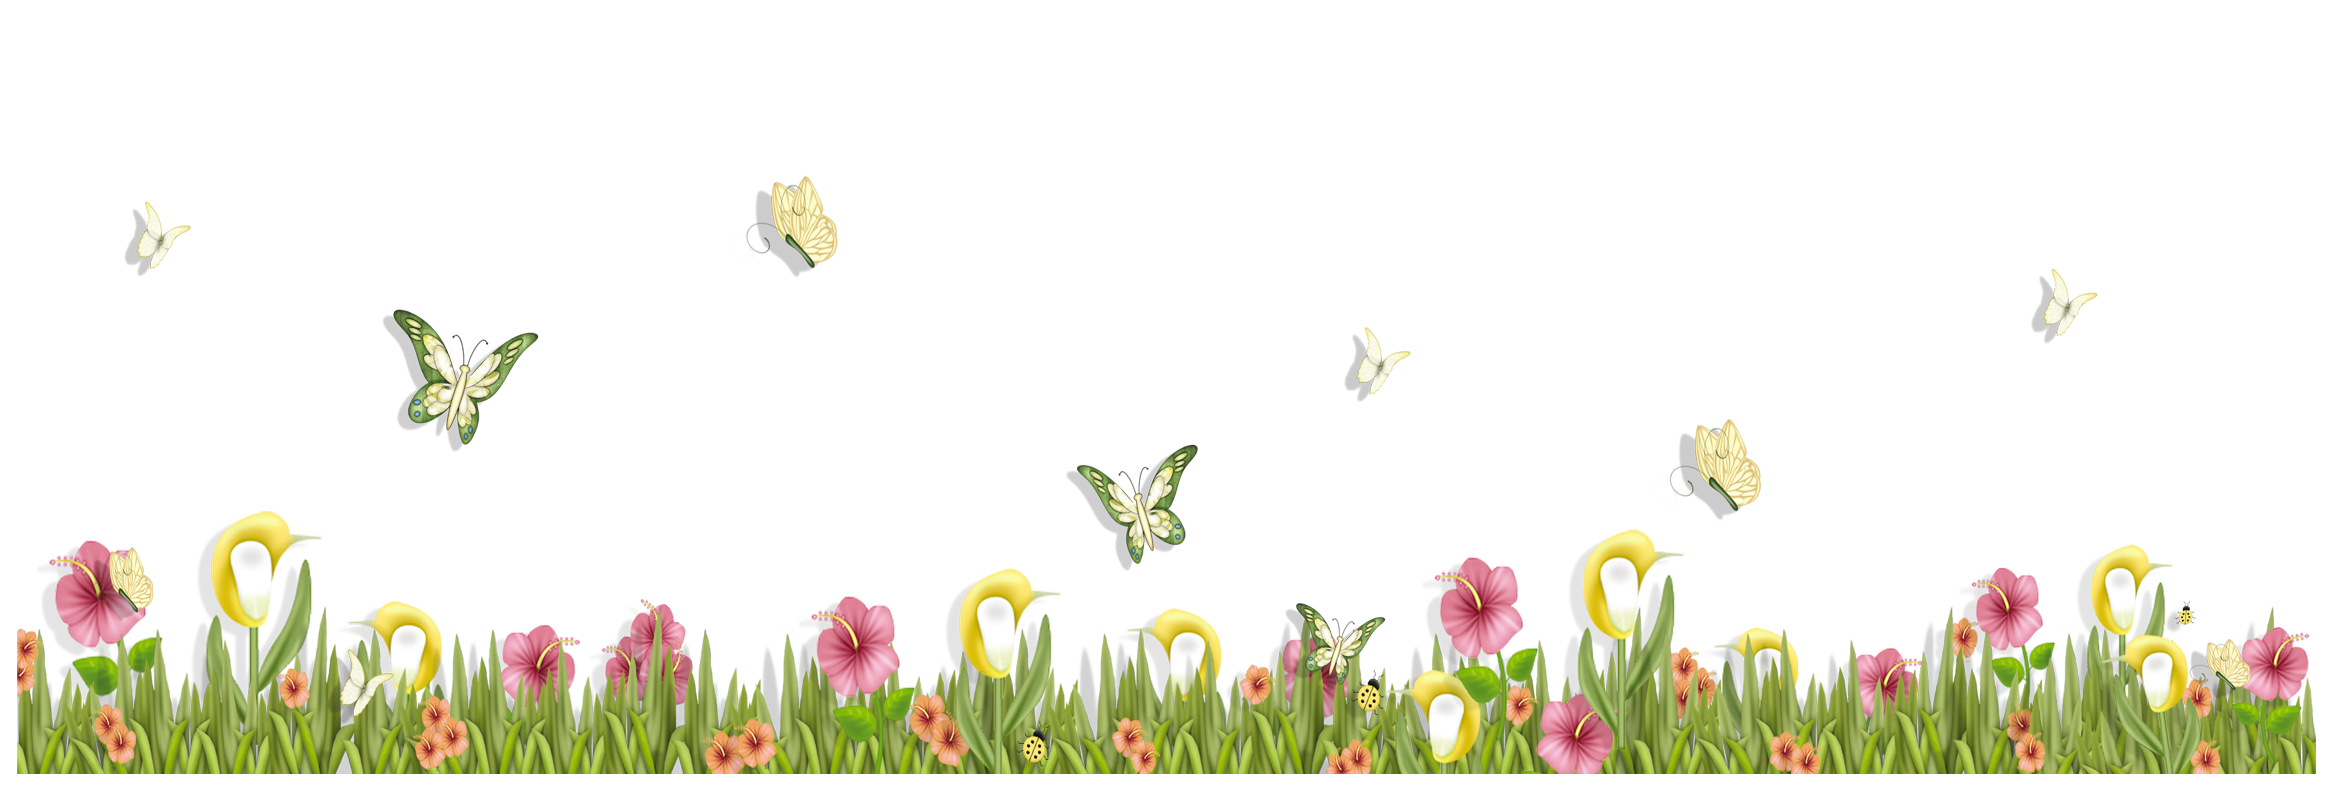 Clipart butterfly flower. Grass with butterflies and